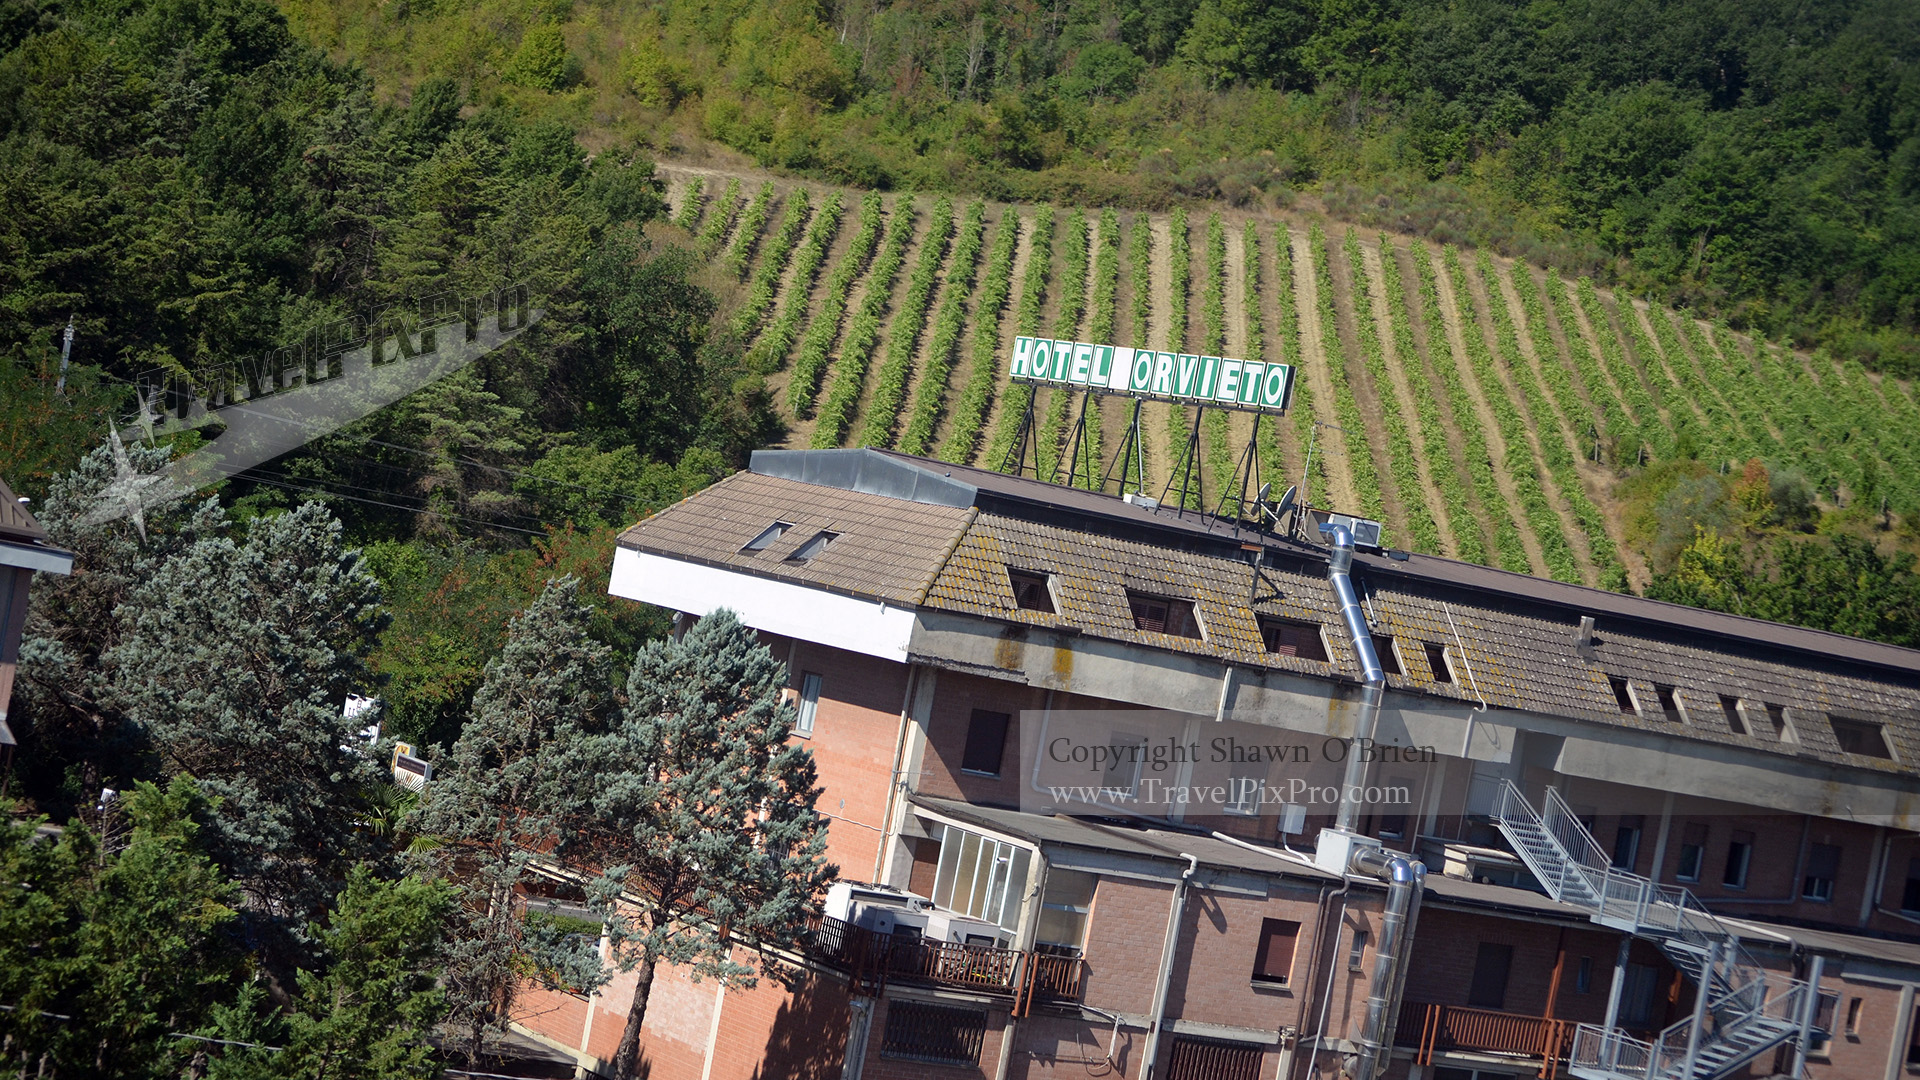 Italian Hotel and Vineyard